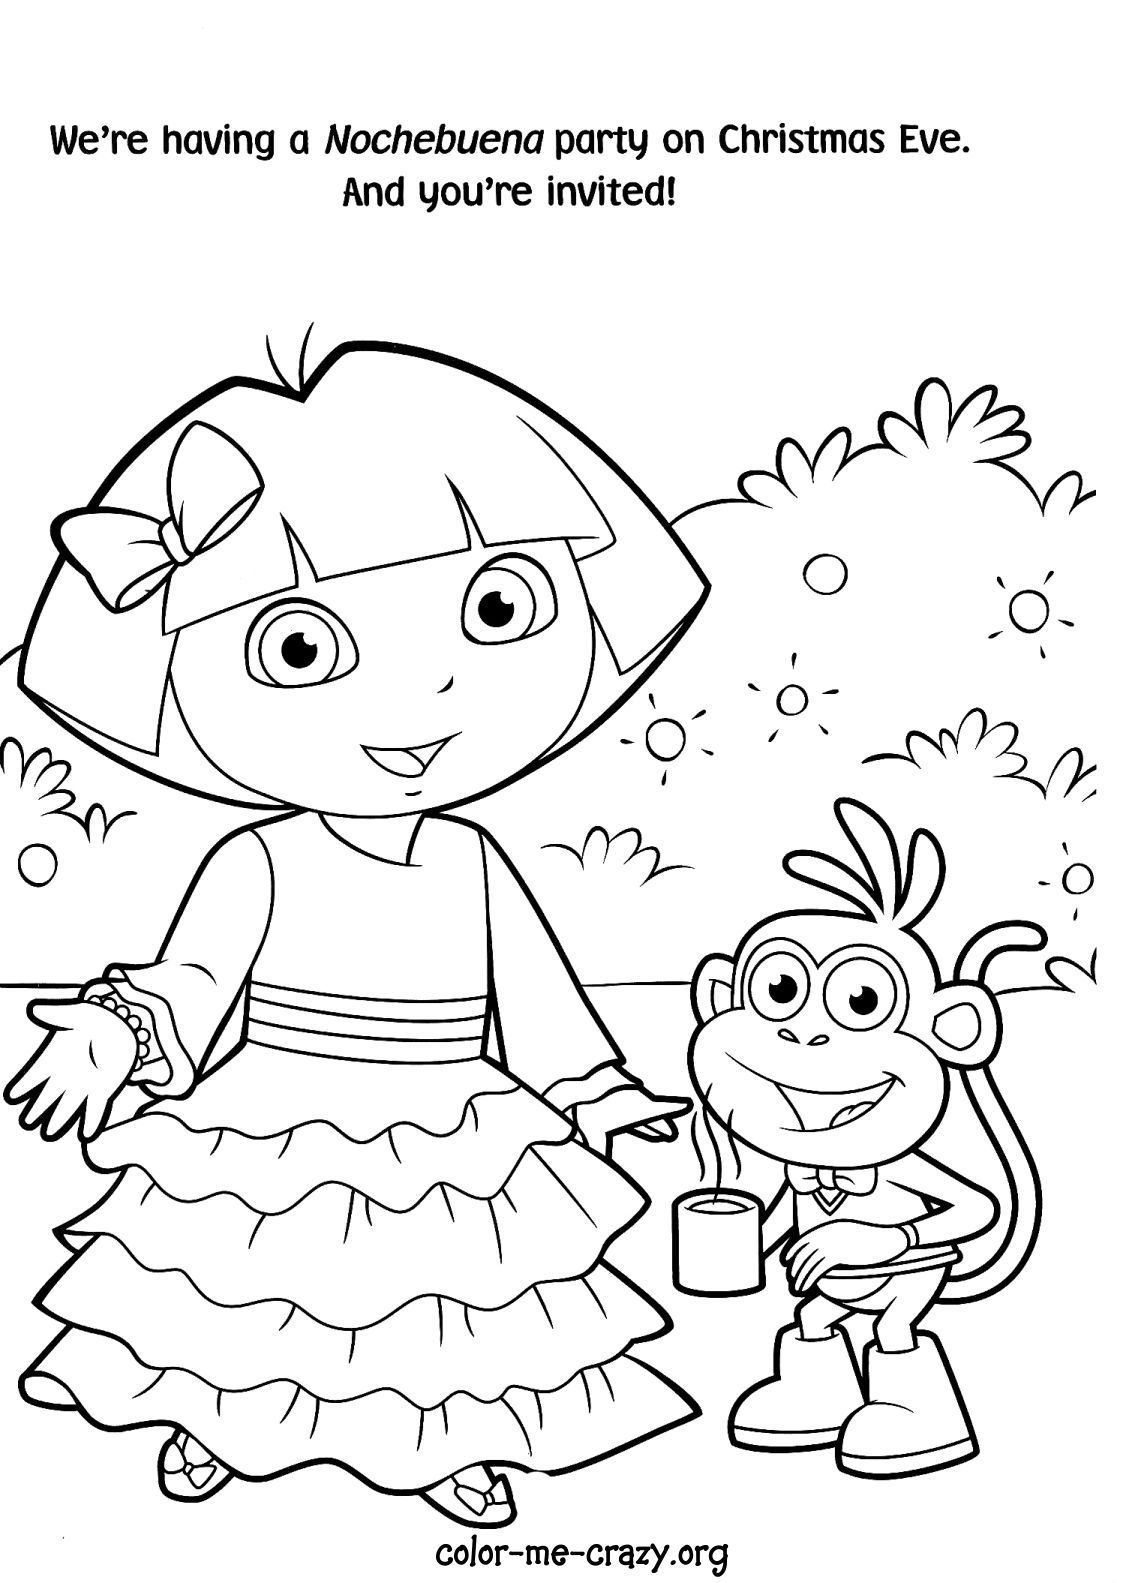 Uncategorized Dora Free Coloring Pages cool dora coloring pages page 1 top markotop for free printable christmas picture 3 picture